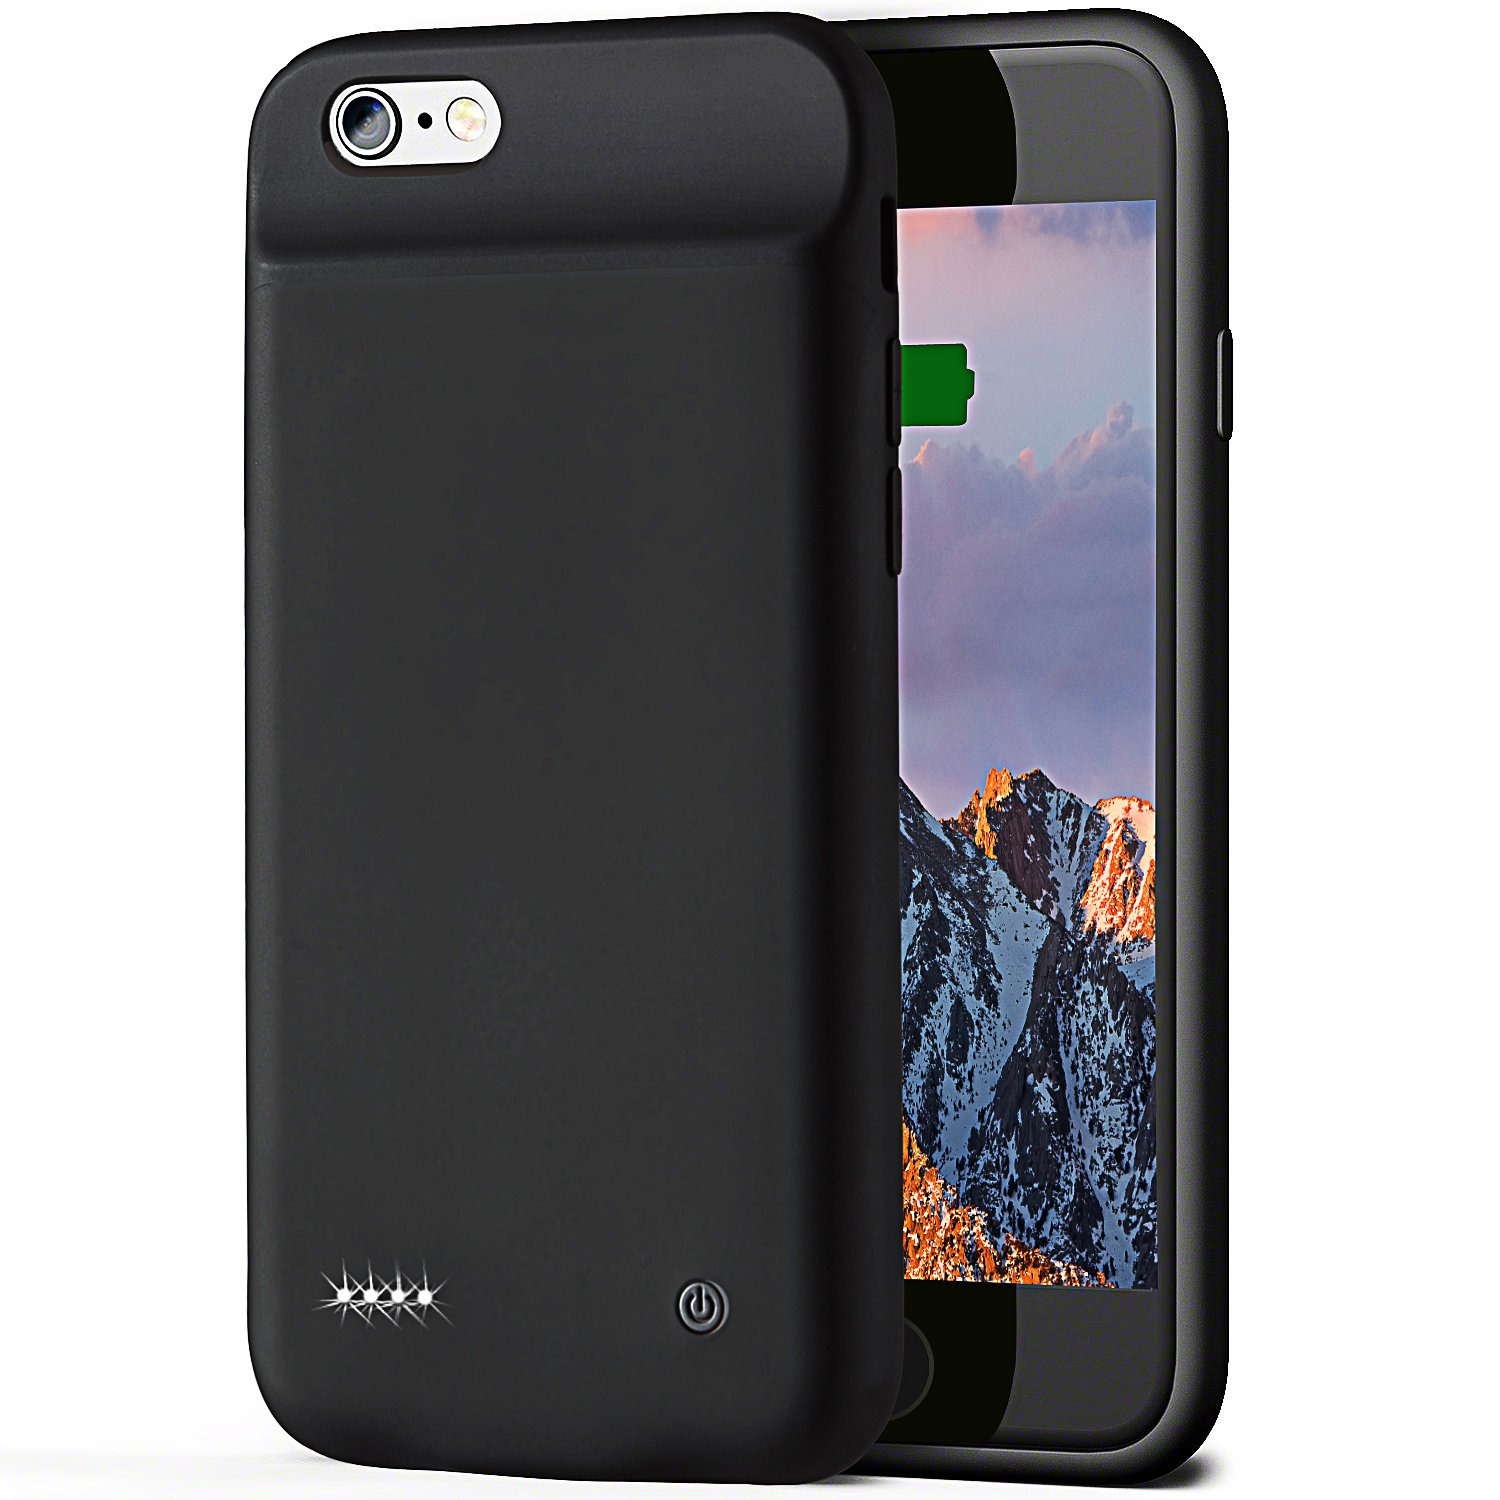 [UPGRADED] iPhone 6 6s Battery Case,Comzor Battery Case with Great Touch Portable Charging Case 3000mAh Protective Charger Case for Apple iPhone 8 7 6s 6 (4.7 Inch)[Black]